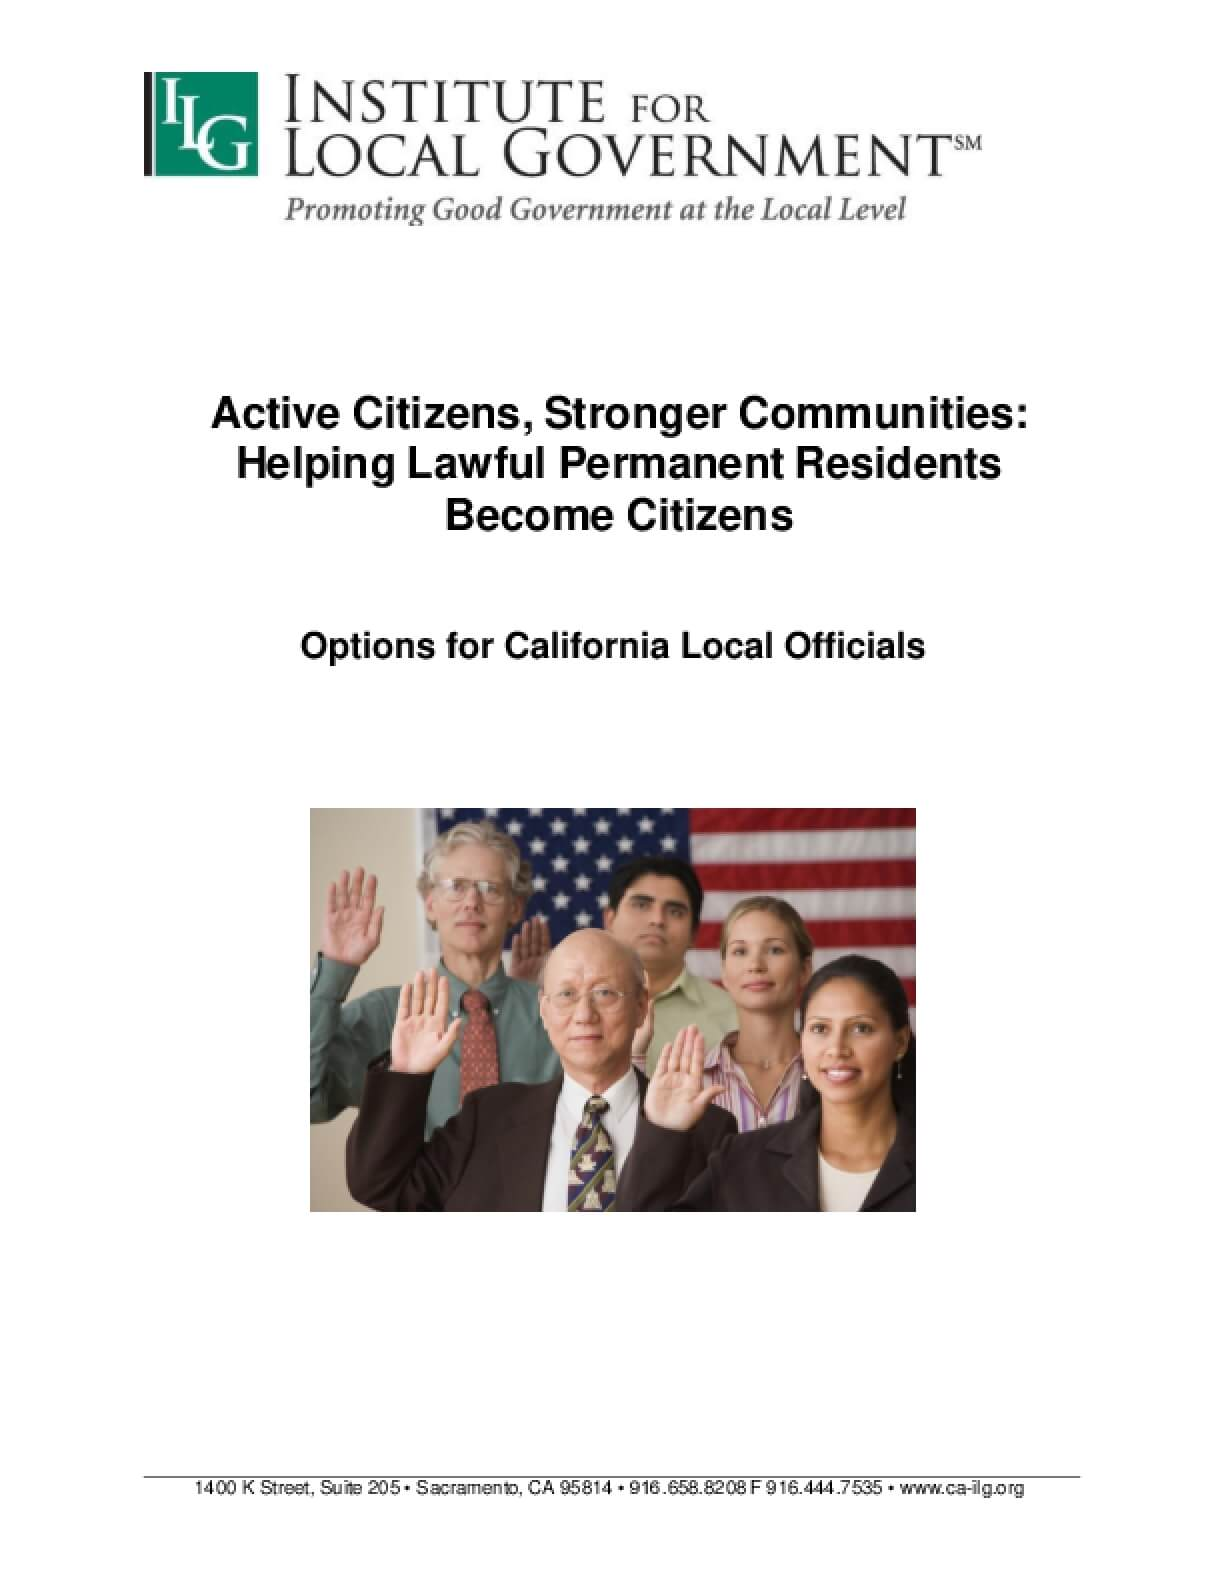 Active Citizens, Stronger Communities: Helping Lawful Permanent Residents Become Citizens